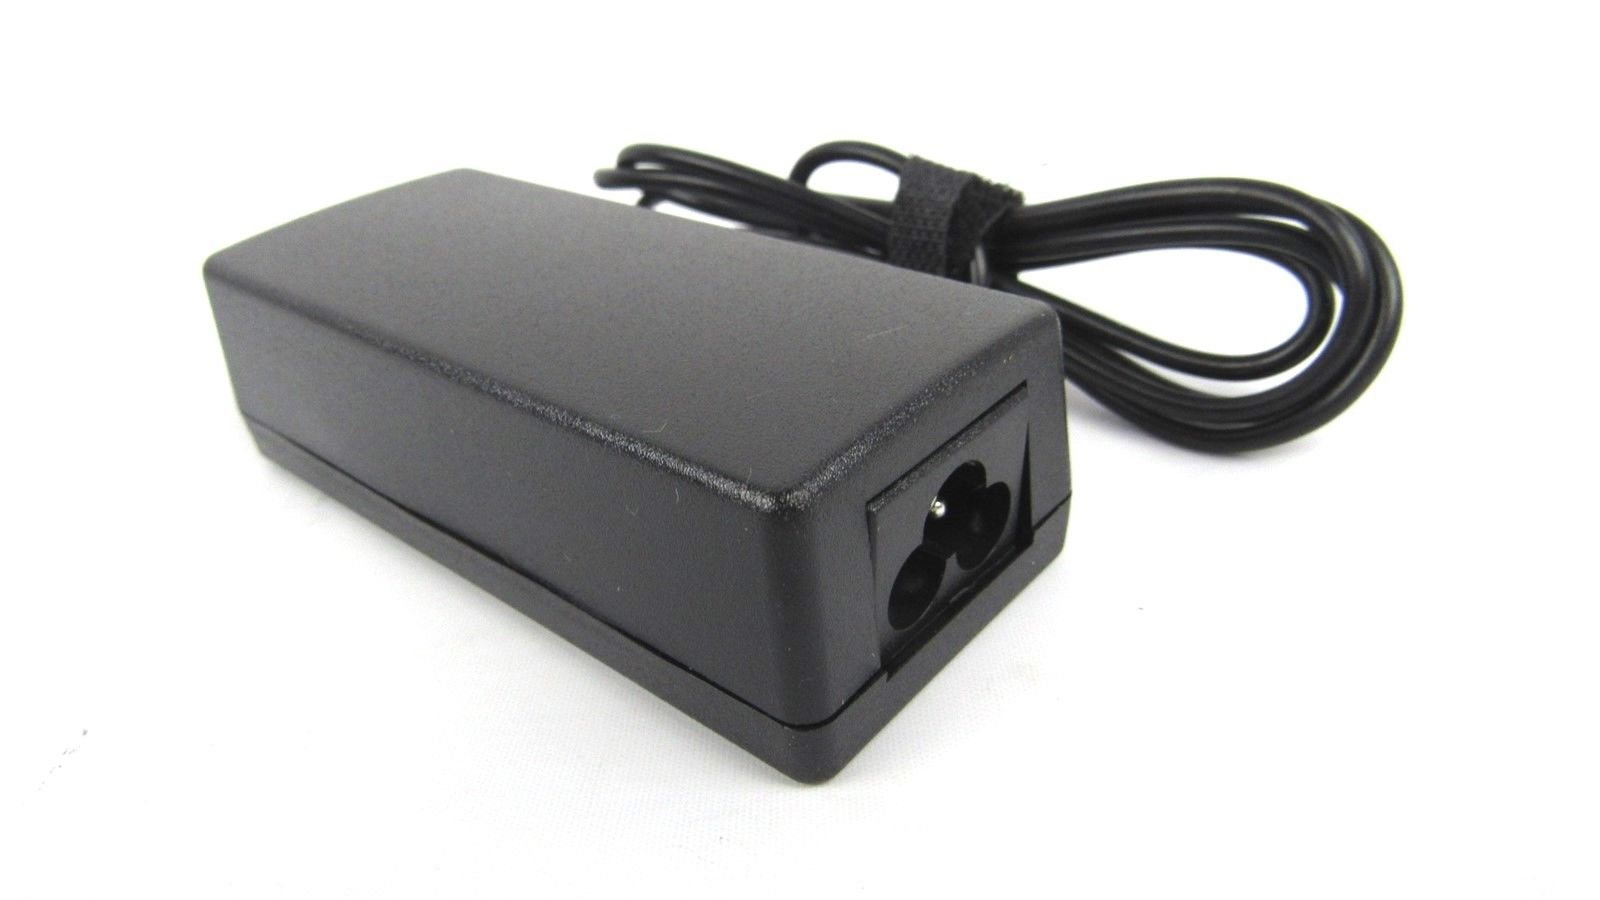 AC Adapter Charger for HP Mini 19V 1.58A 110-1020NR 110-1025DX 110-1020LA